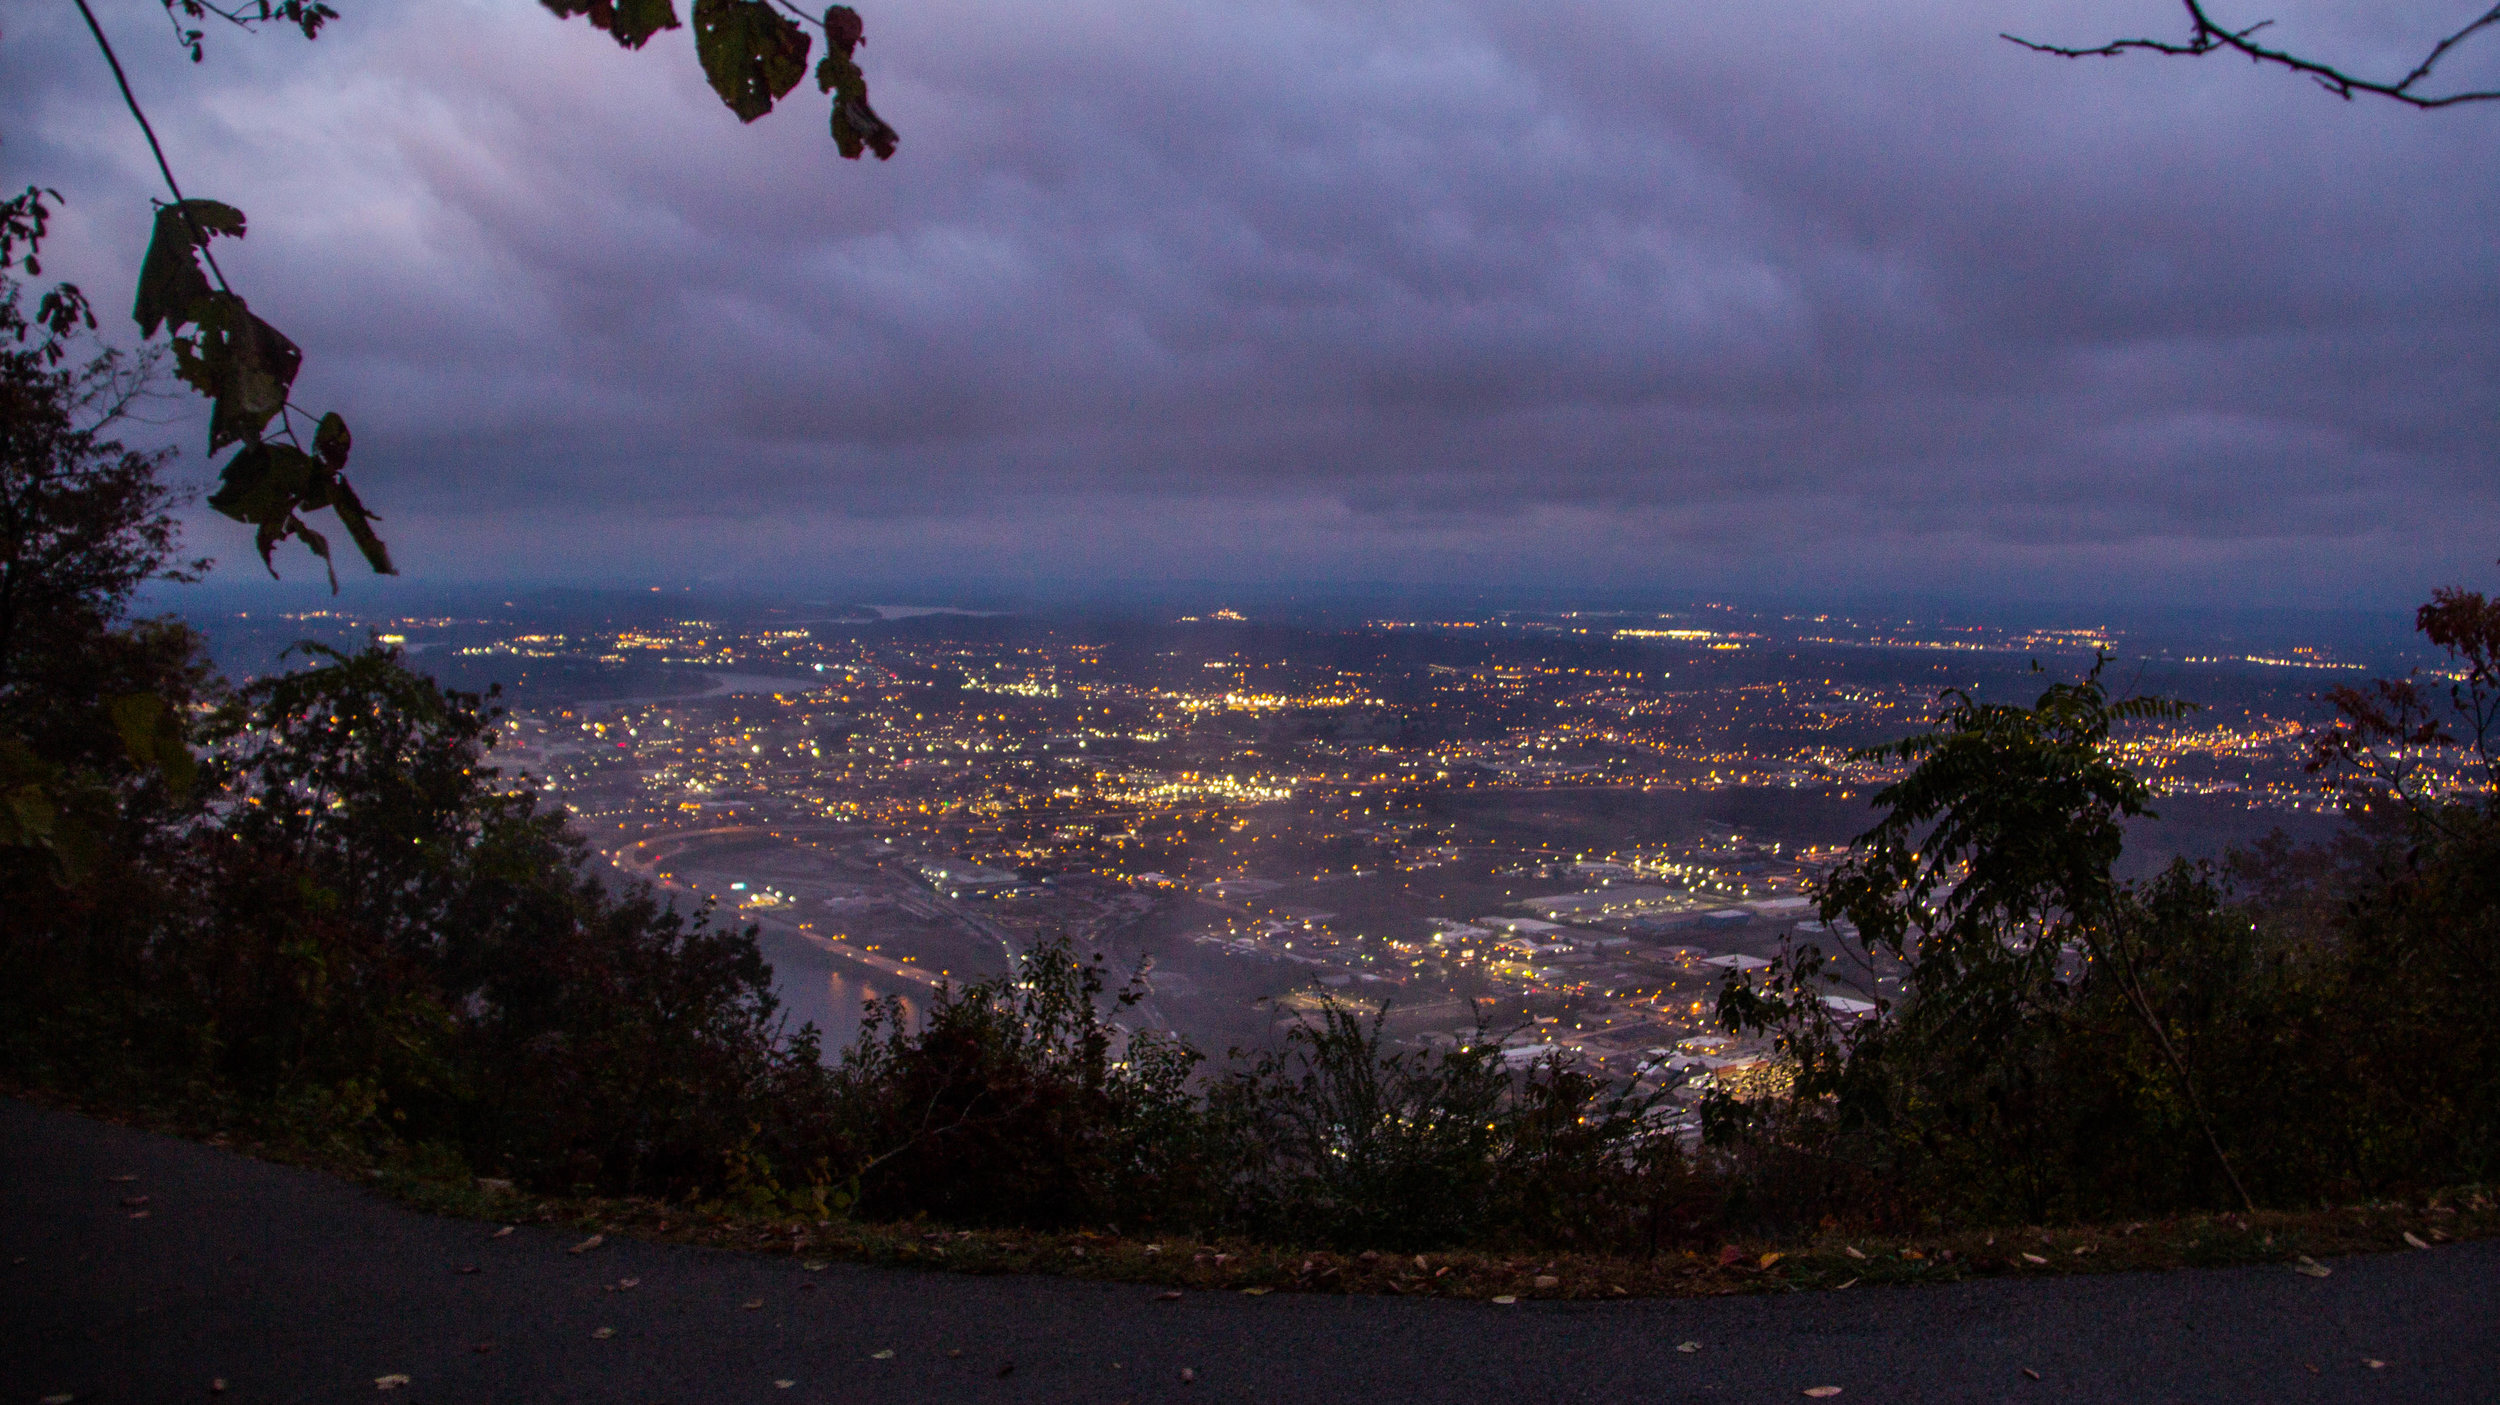 point-park-lookout-mountain-chattanooga-at-night-8.jpg